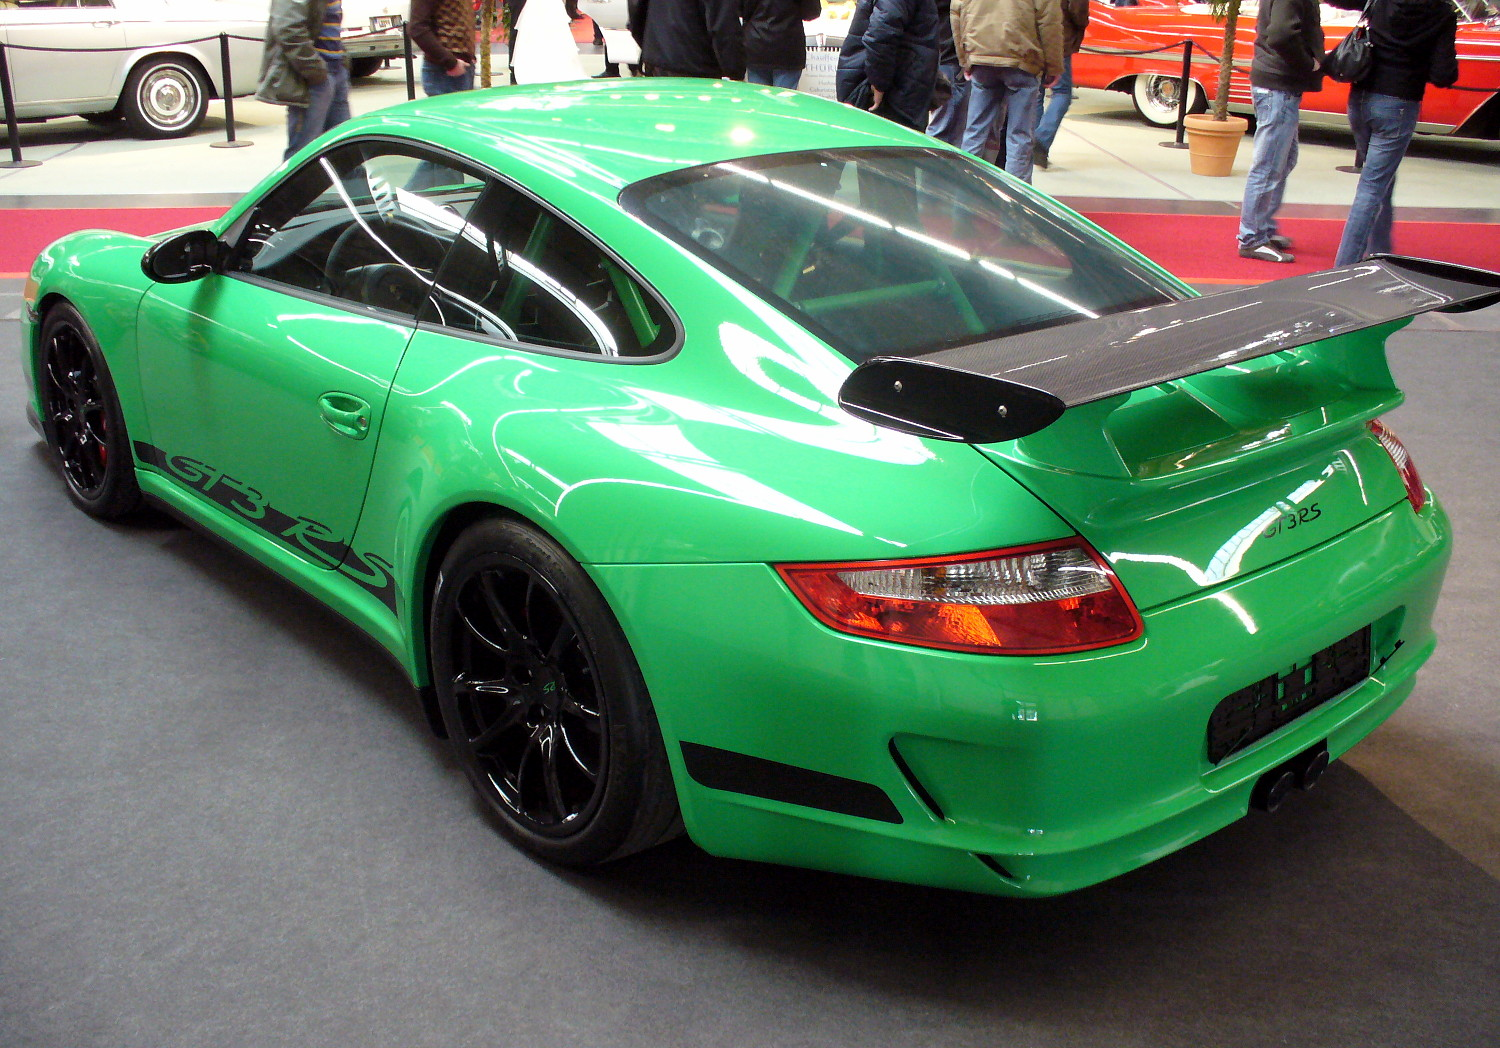 file porsche 997 gt3 rs heck jpg wikimedia commons. Black Bedroom Furniture Sets. Home Design Ideas